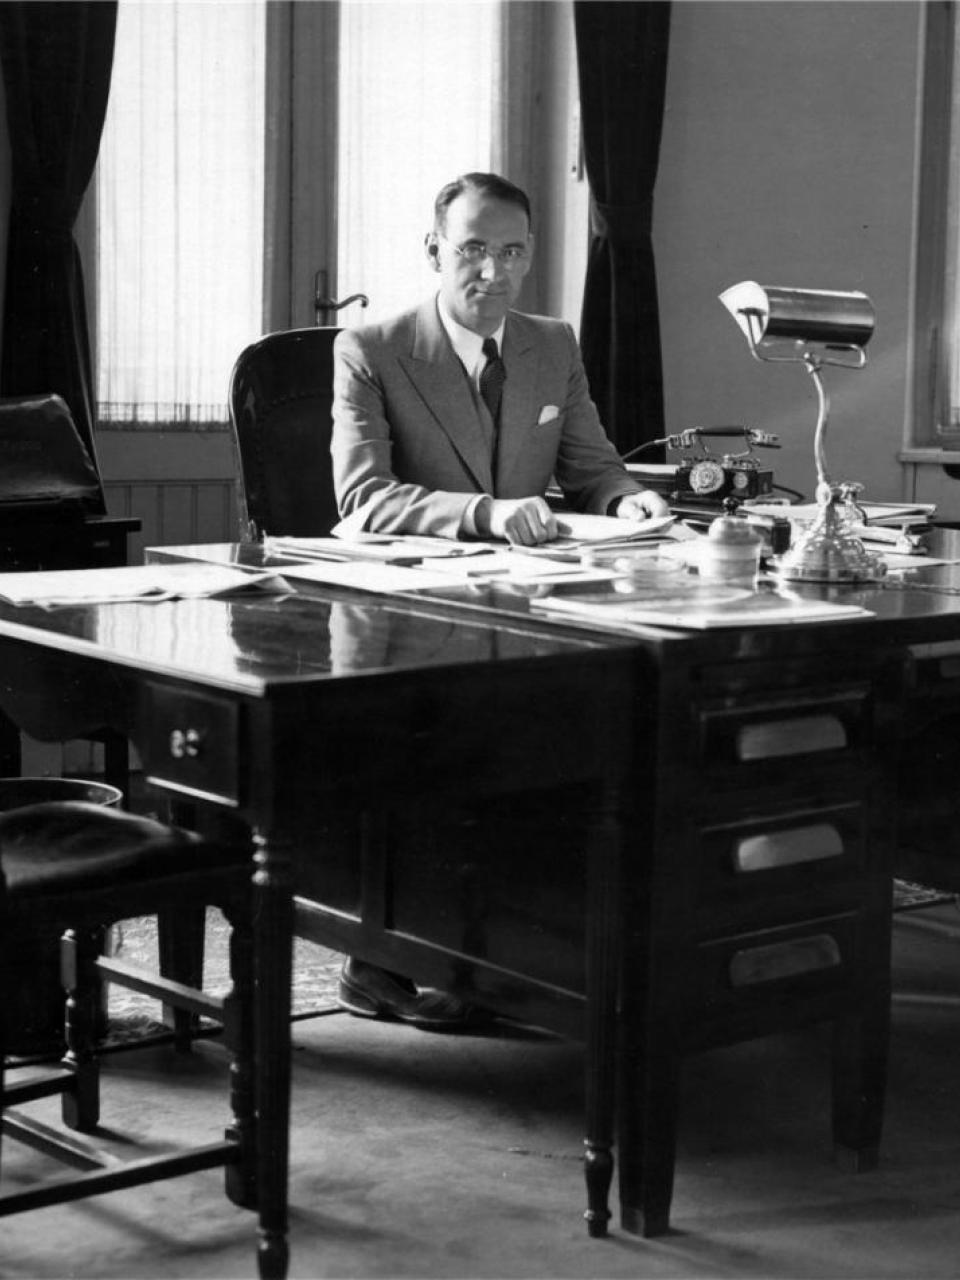 Carl Lutz in his office at the United States legation © Archives of Contemporary History, ETH Zurich / Agnes Hirschi